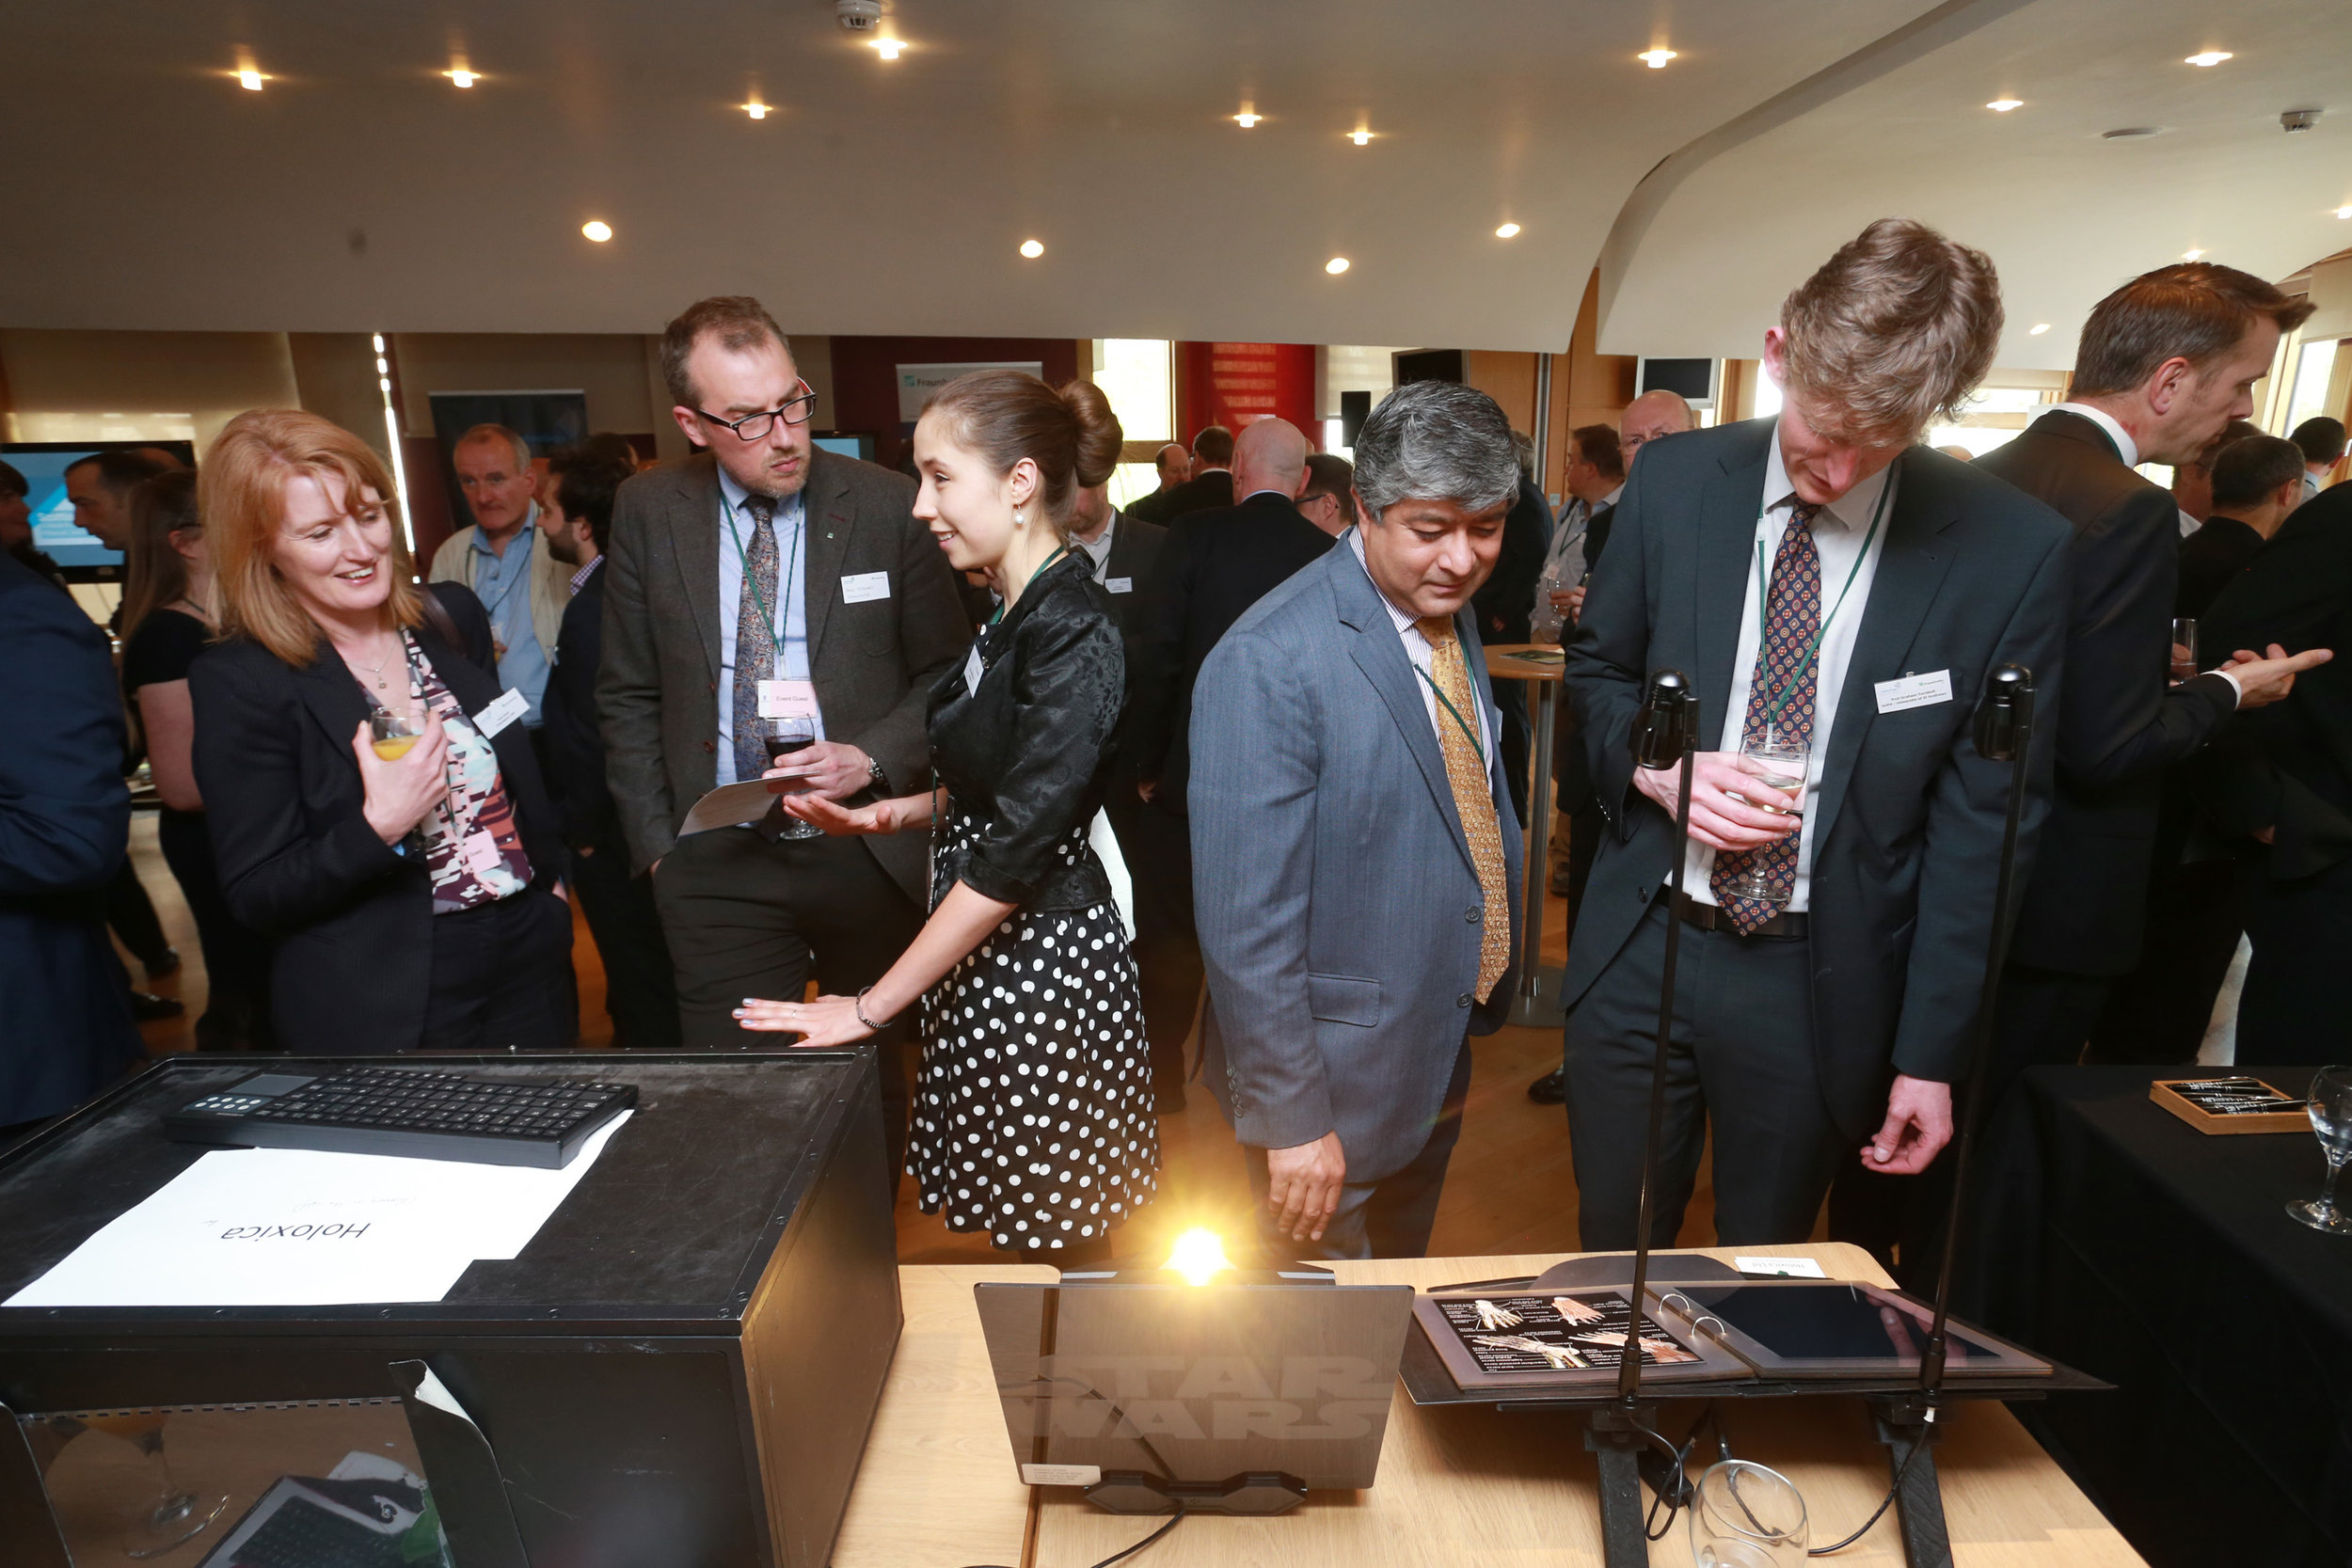 Anna and Javid from Holoxica, showing their holographic video display and digital holograms.Photo courtesy of Technology Scotland.